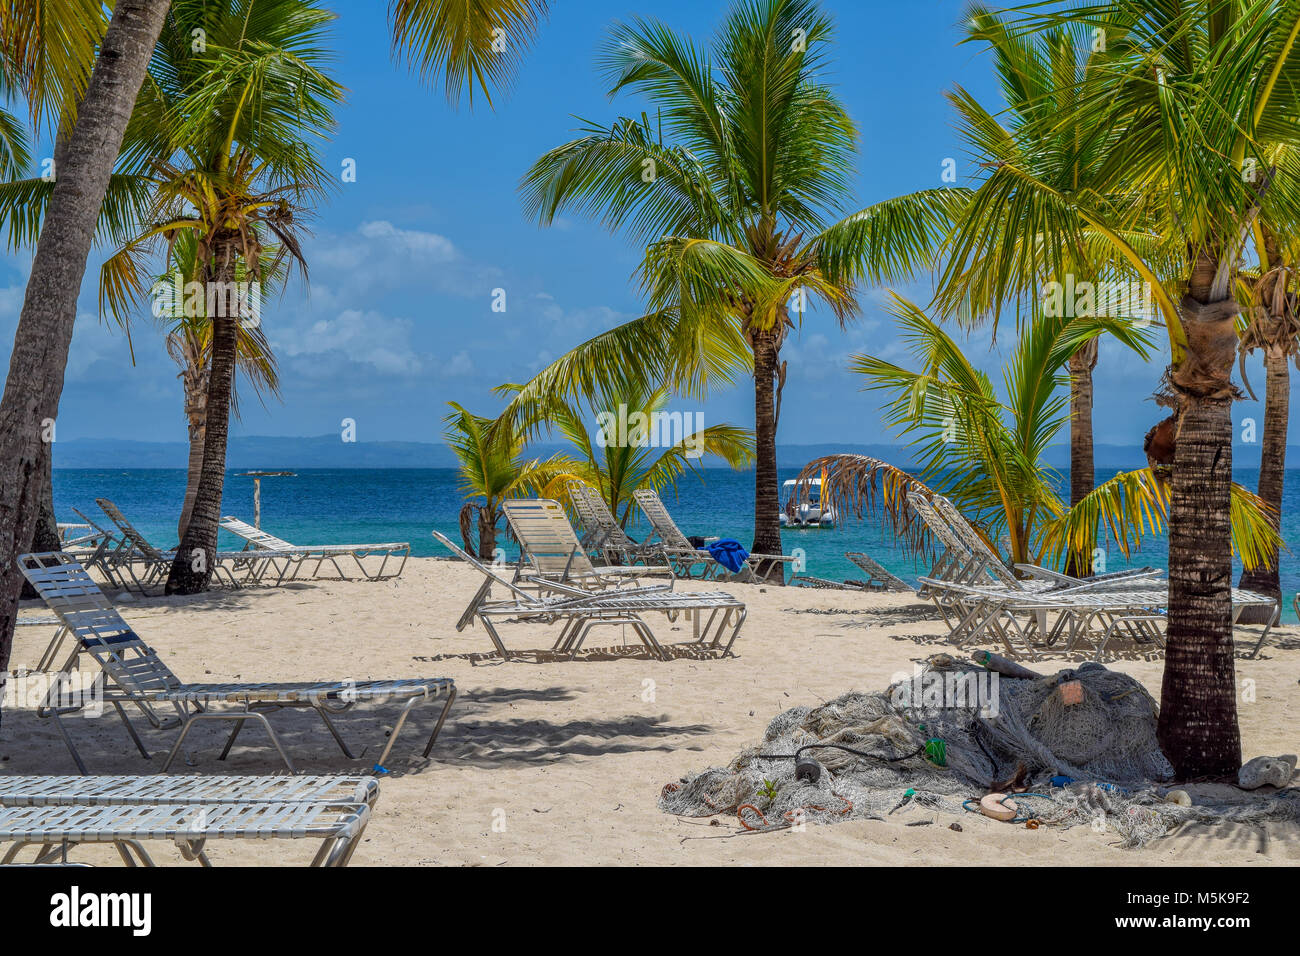 White beach with sunbeds, many palms, blue sky, a fisher net and turquoise ocean in the caribbean sea, Dominican - Stock Image